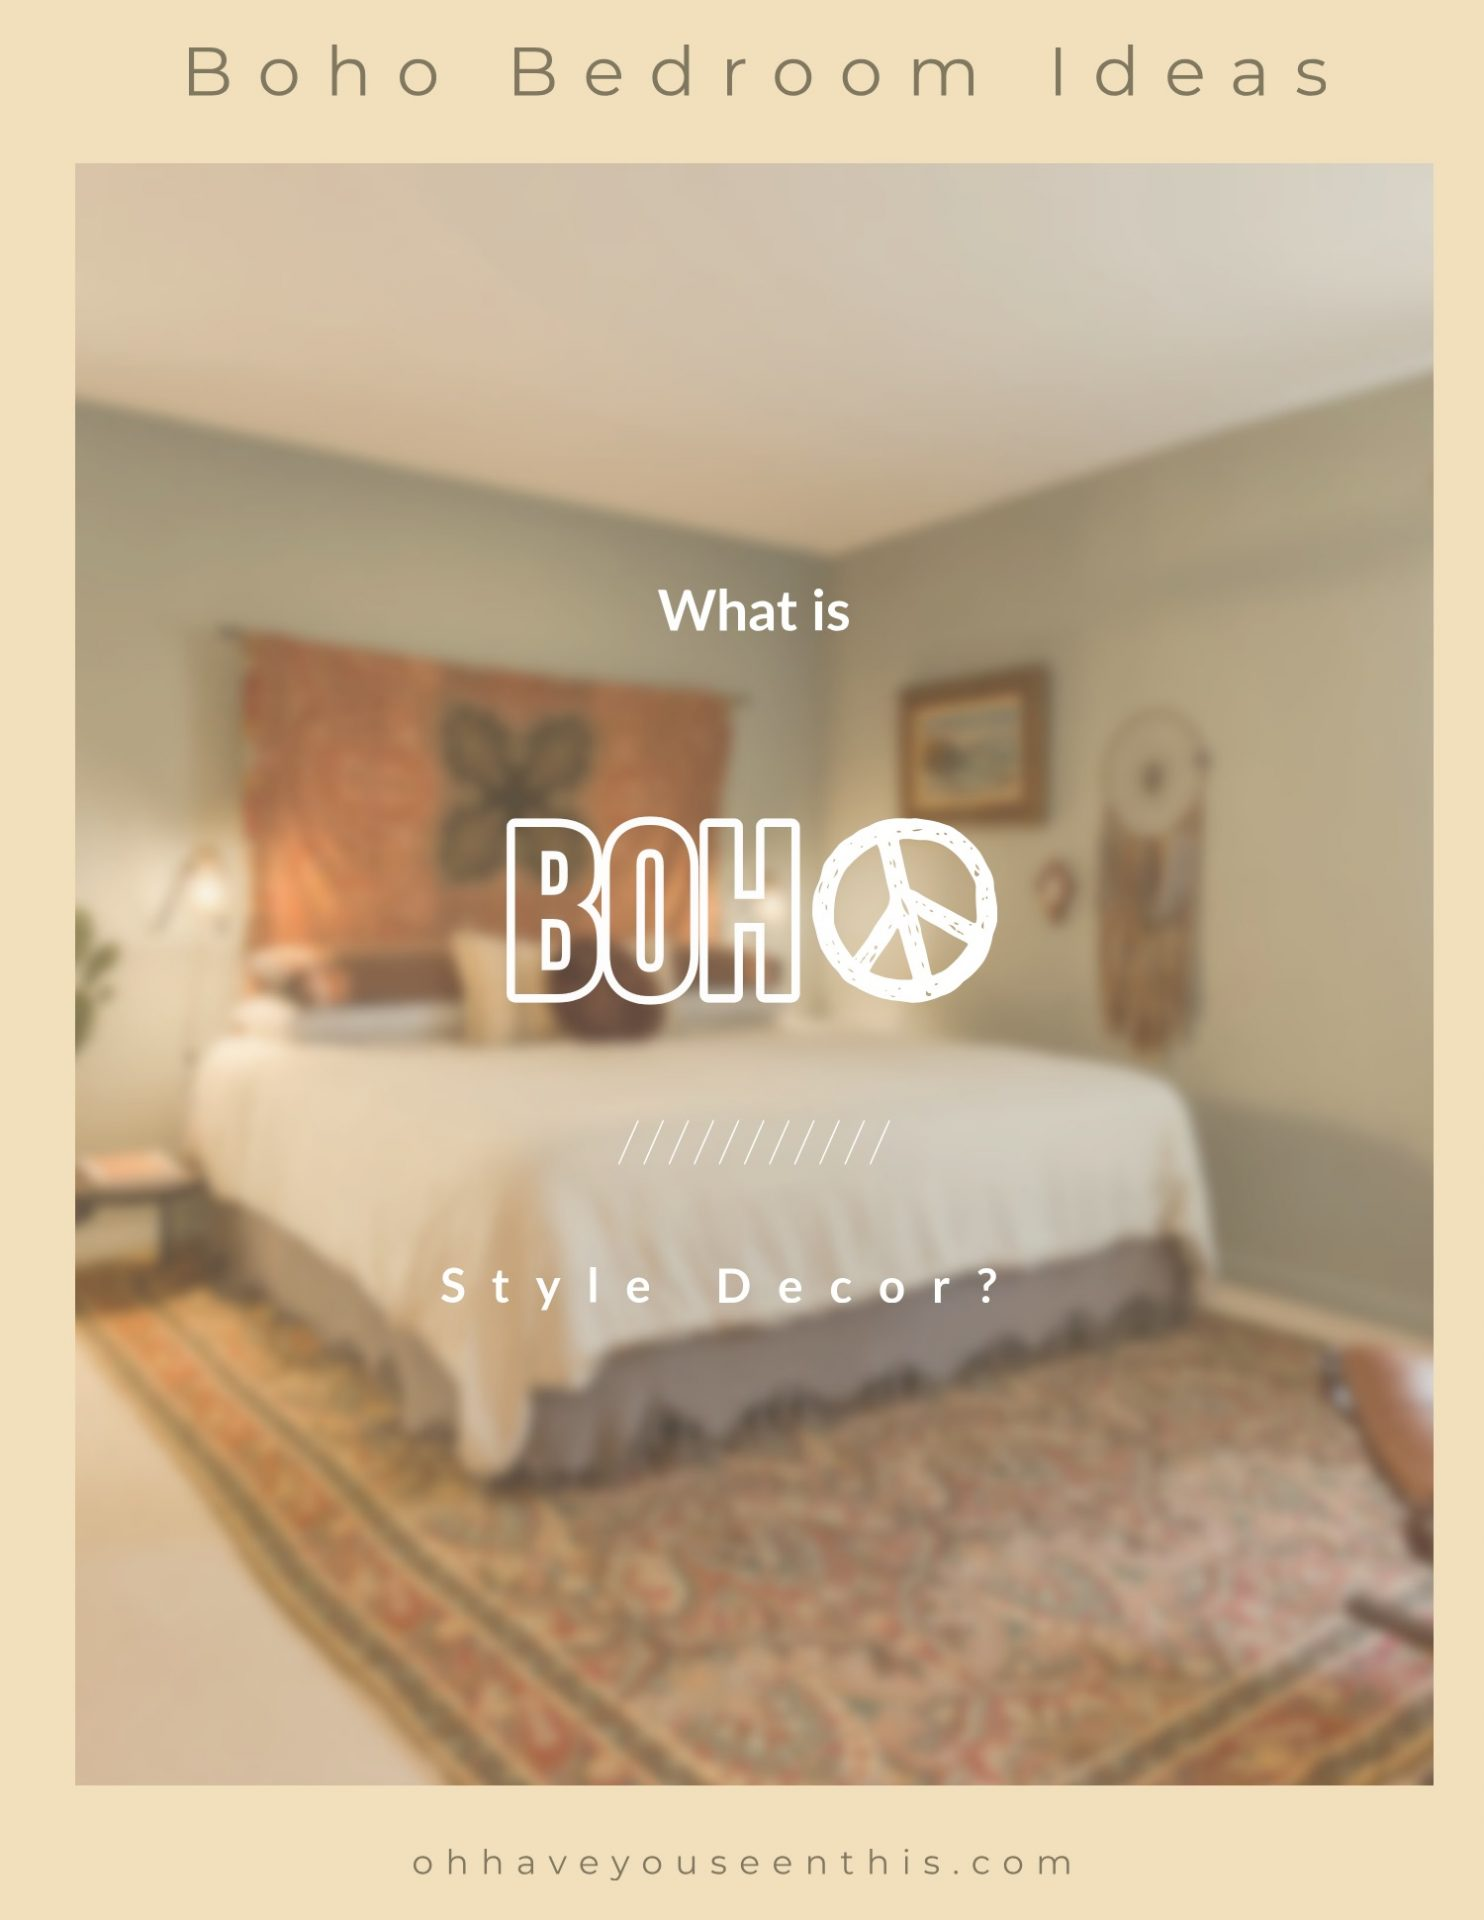 Boho Bedroom Ideas How To Decor Best Color For Bohemian Style